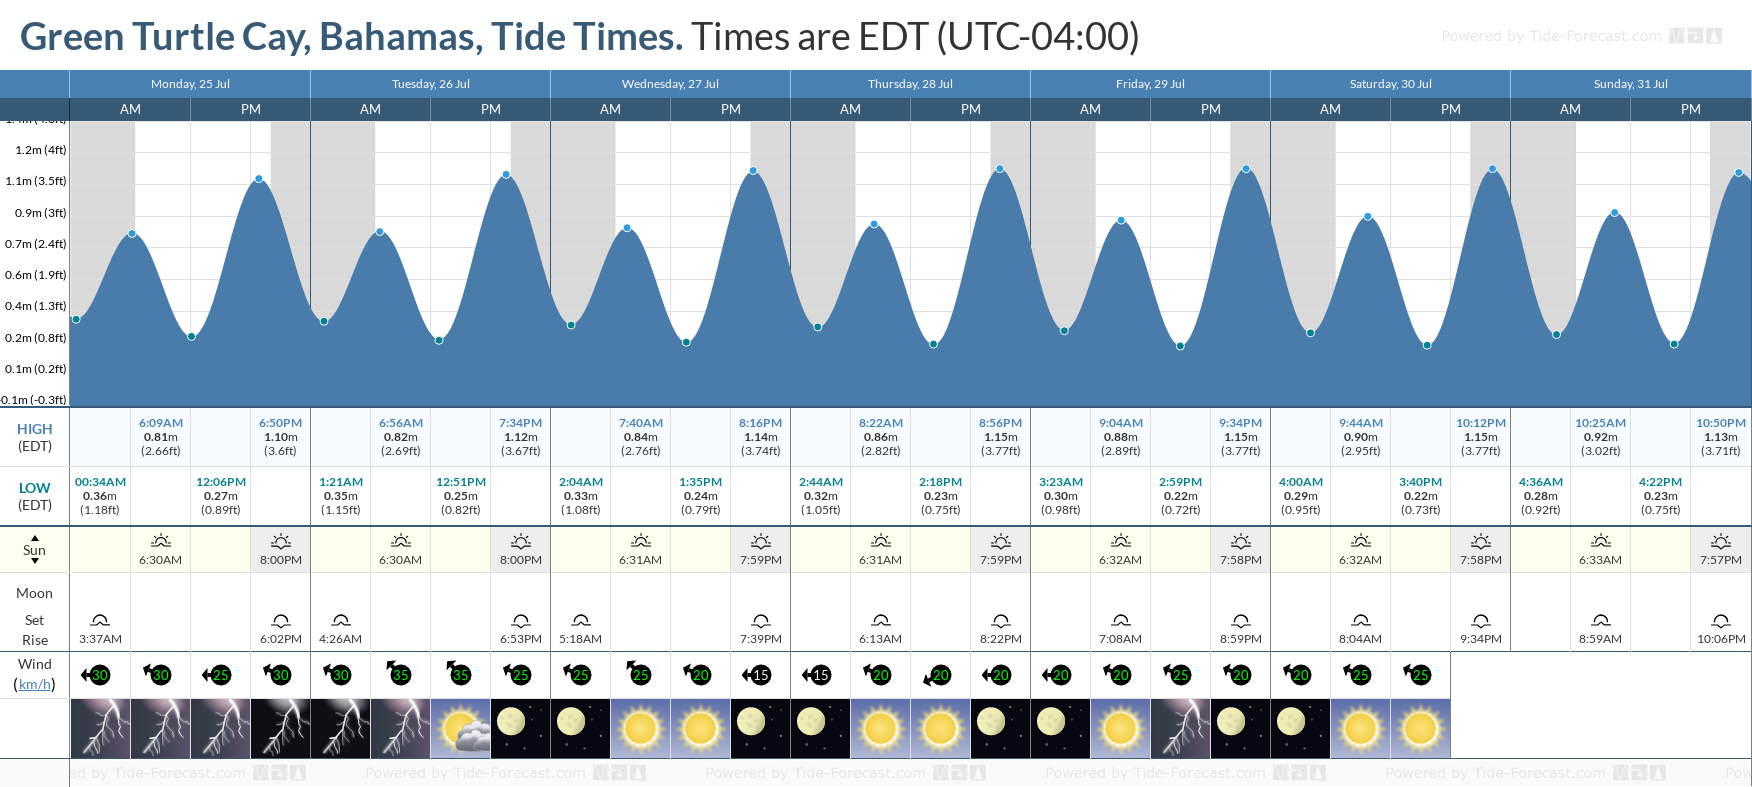 Green Turtle Cay, Bahamas Tide Chart including high and low tide tide times for the next 7 days